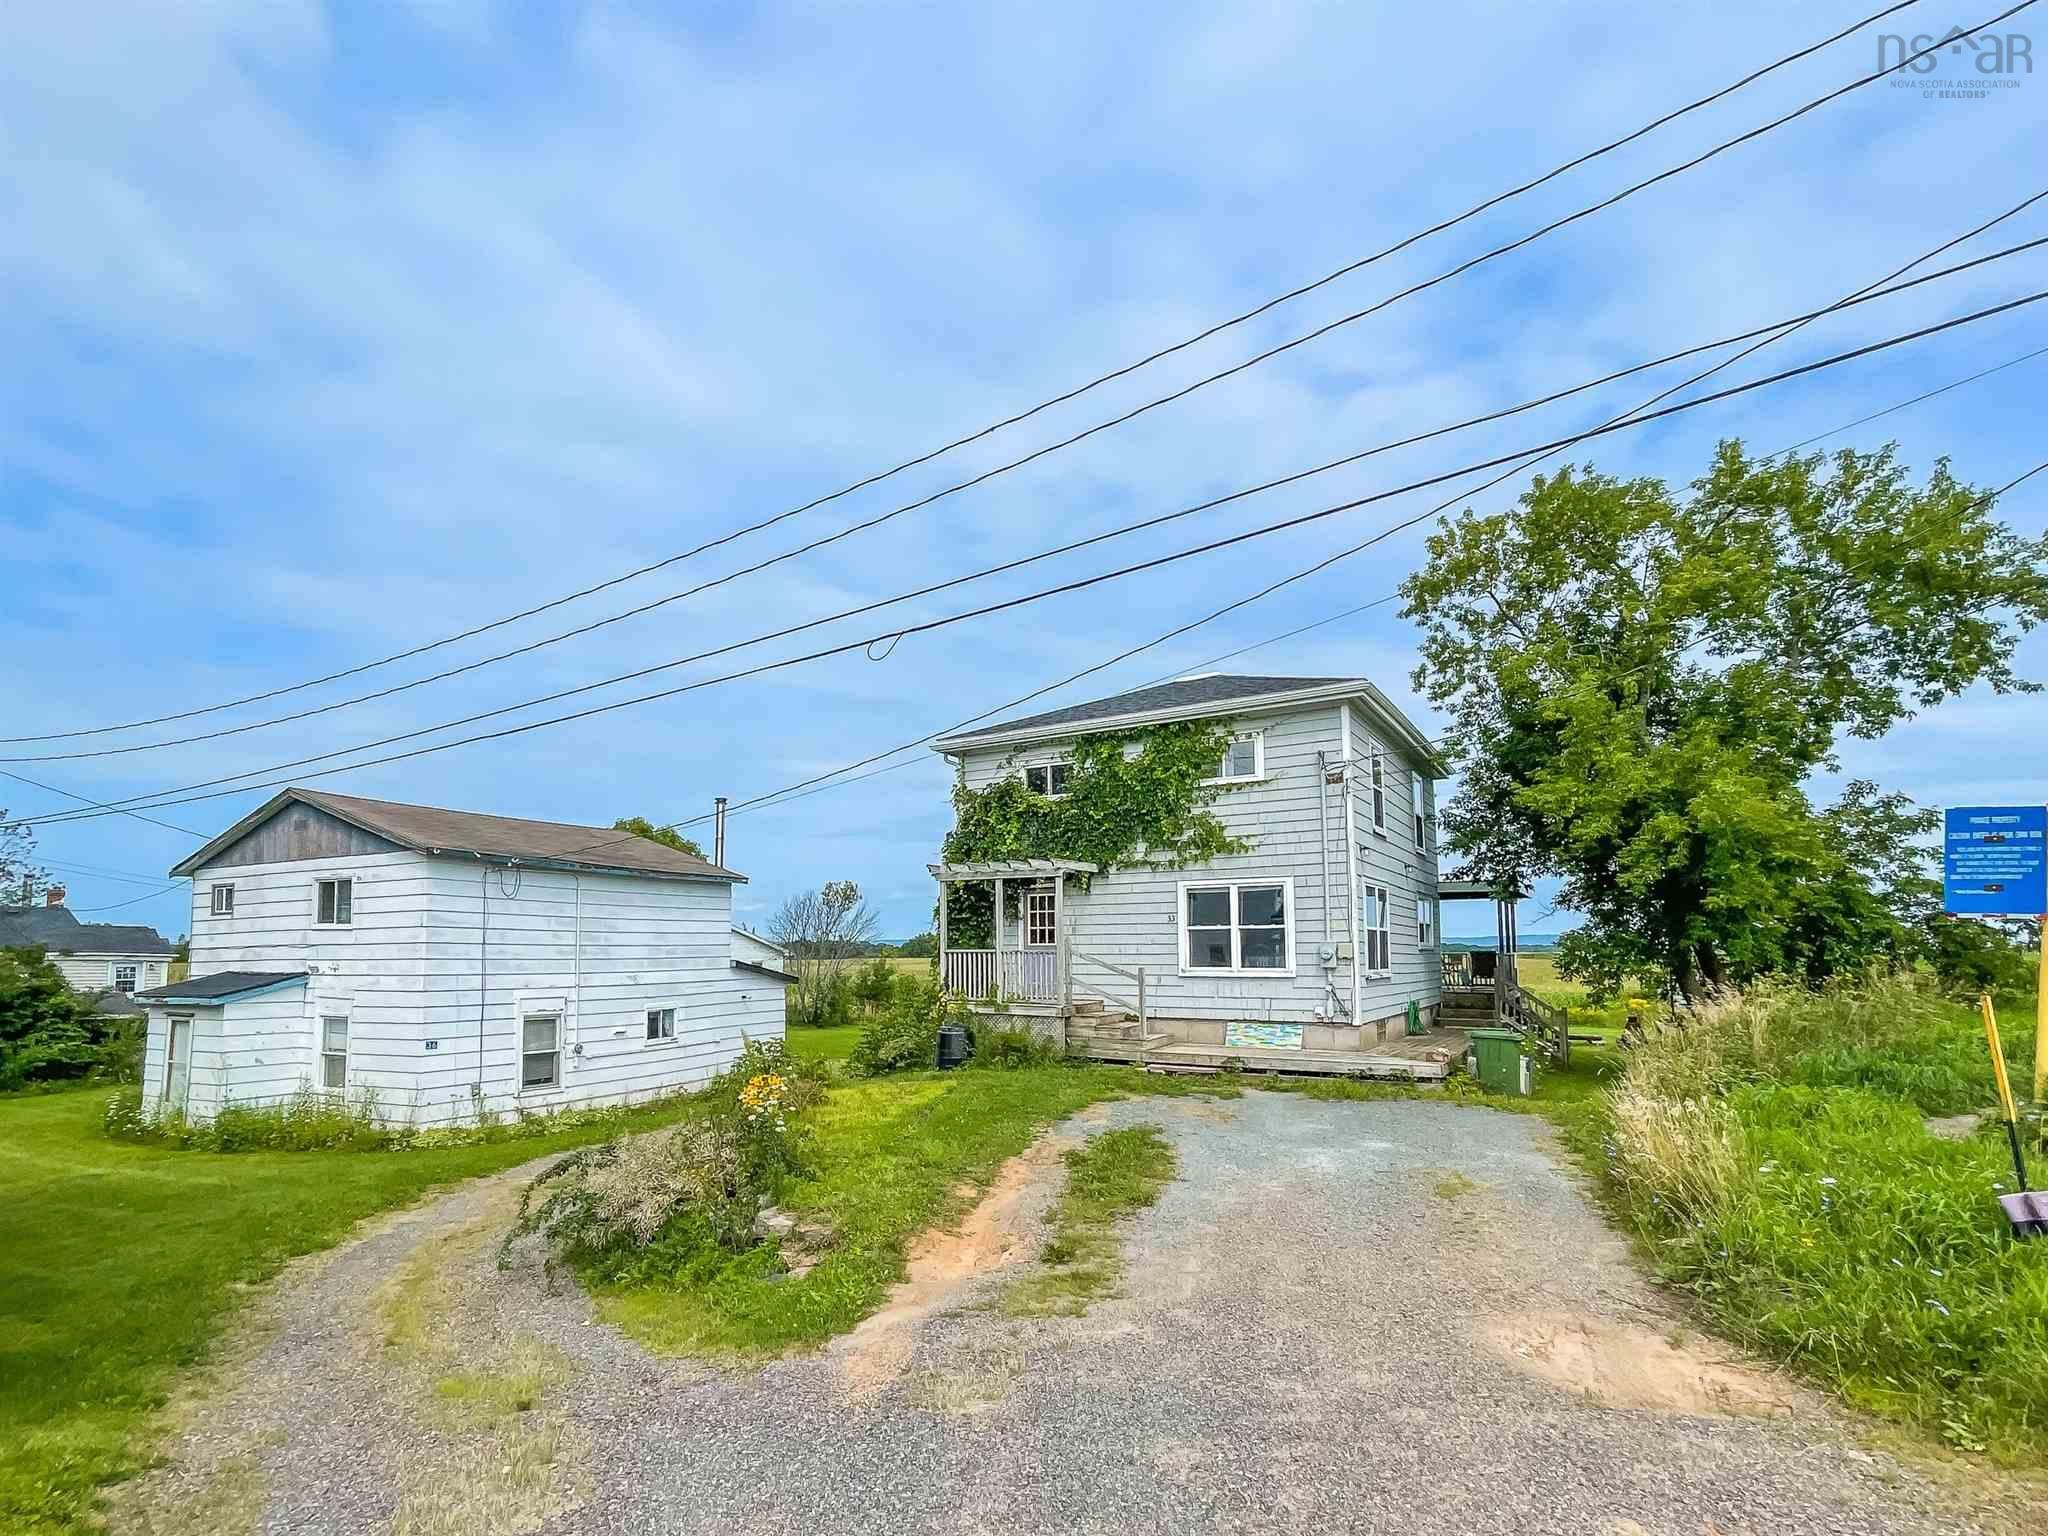 Main Photo: 33 Harbourside Drive in Wolfville: 404-Kings County Residential for sale (Annapolis Valley)  : MLS®# 202120952